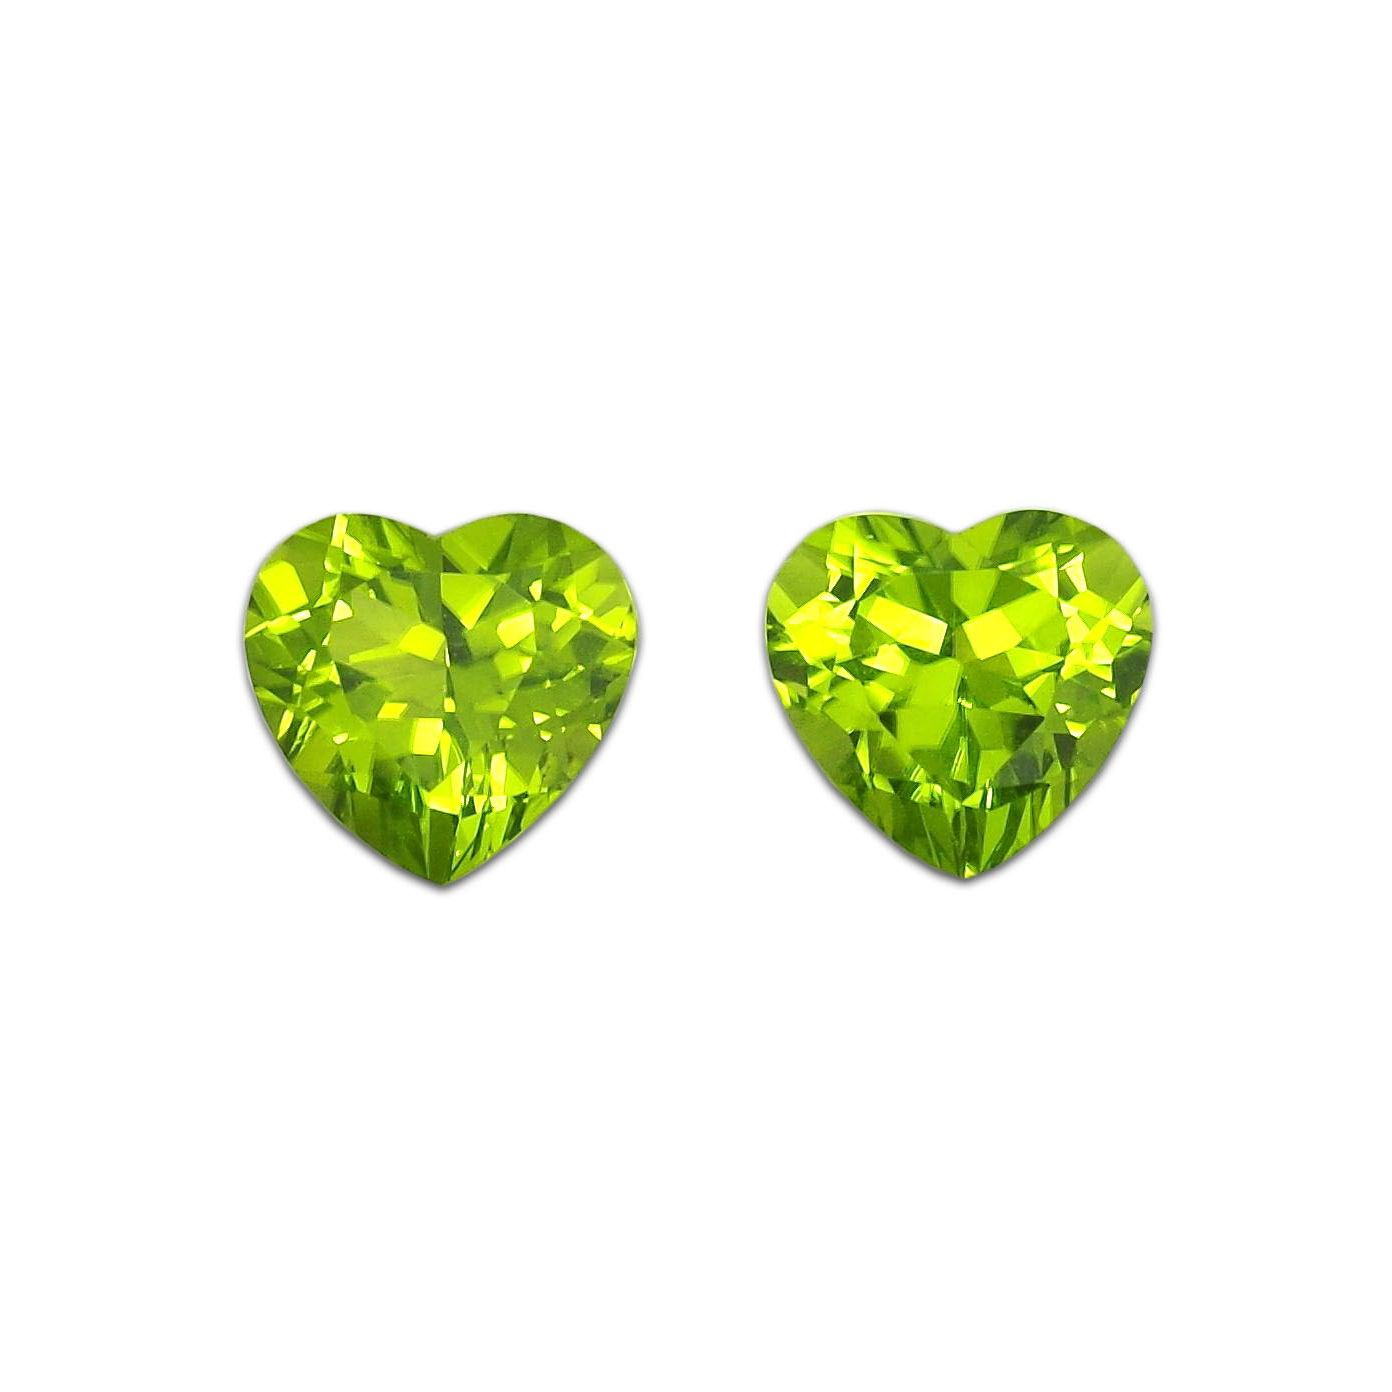 Heart jewelry 9mm heart-shaped high purity olivine bare stone pair can be used as rings, pendants, earrings and belt certificates